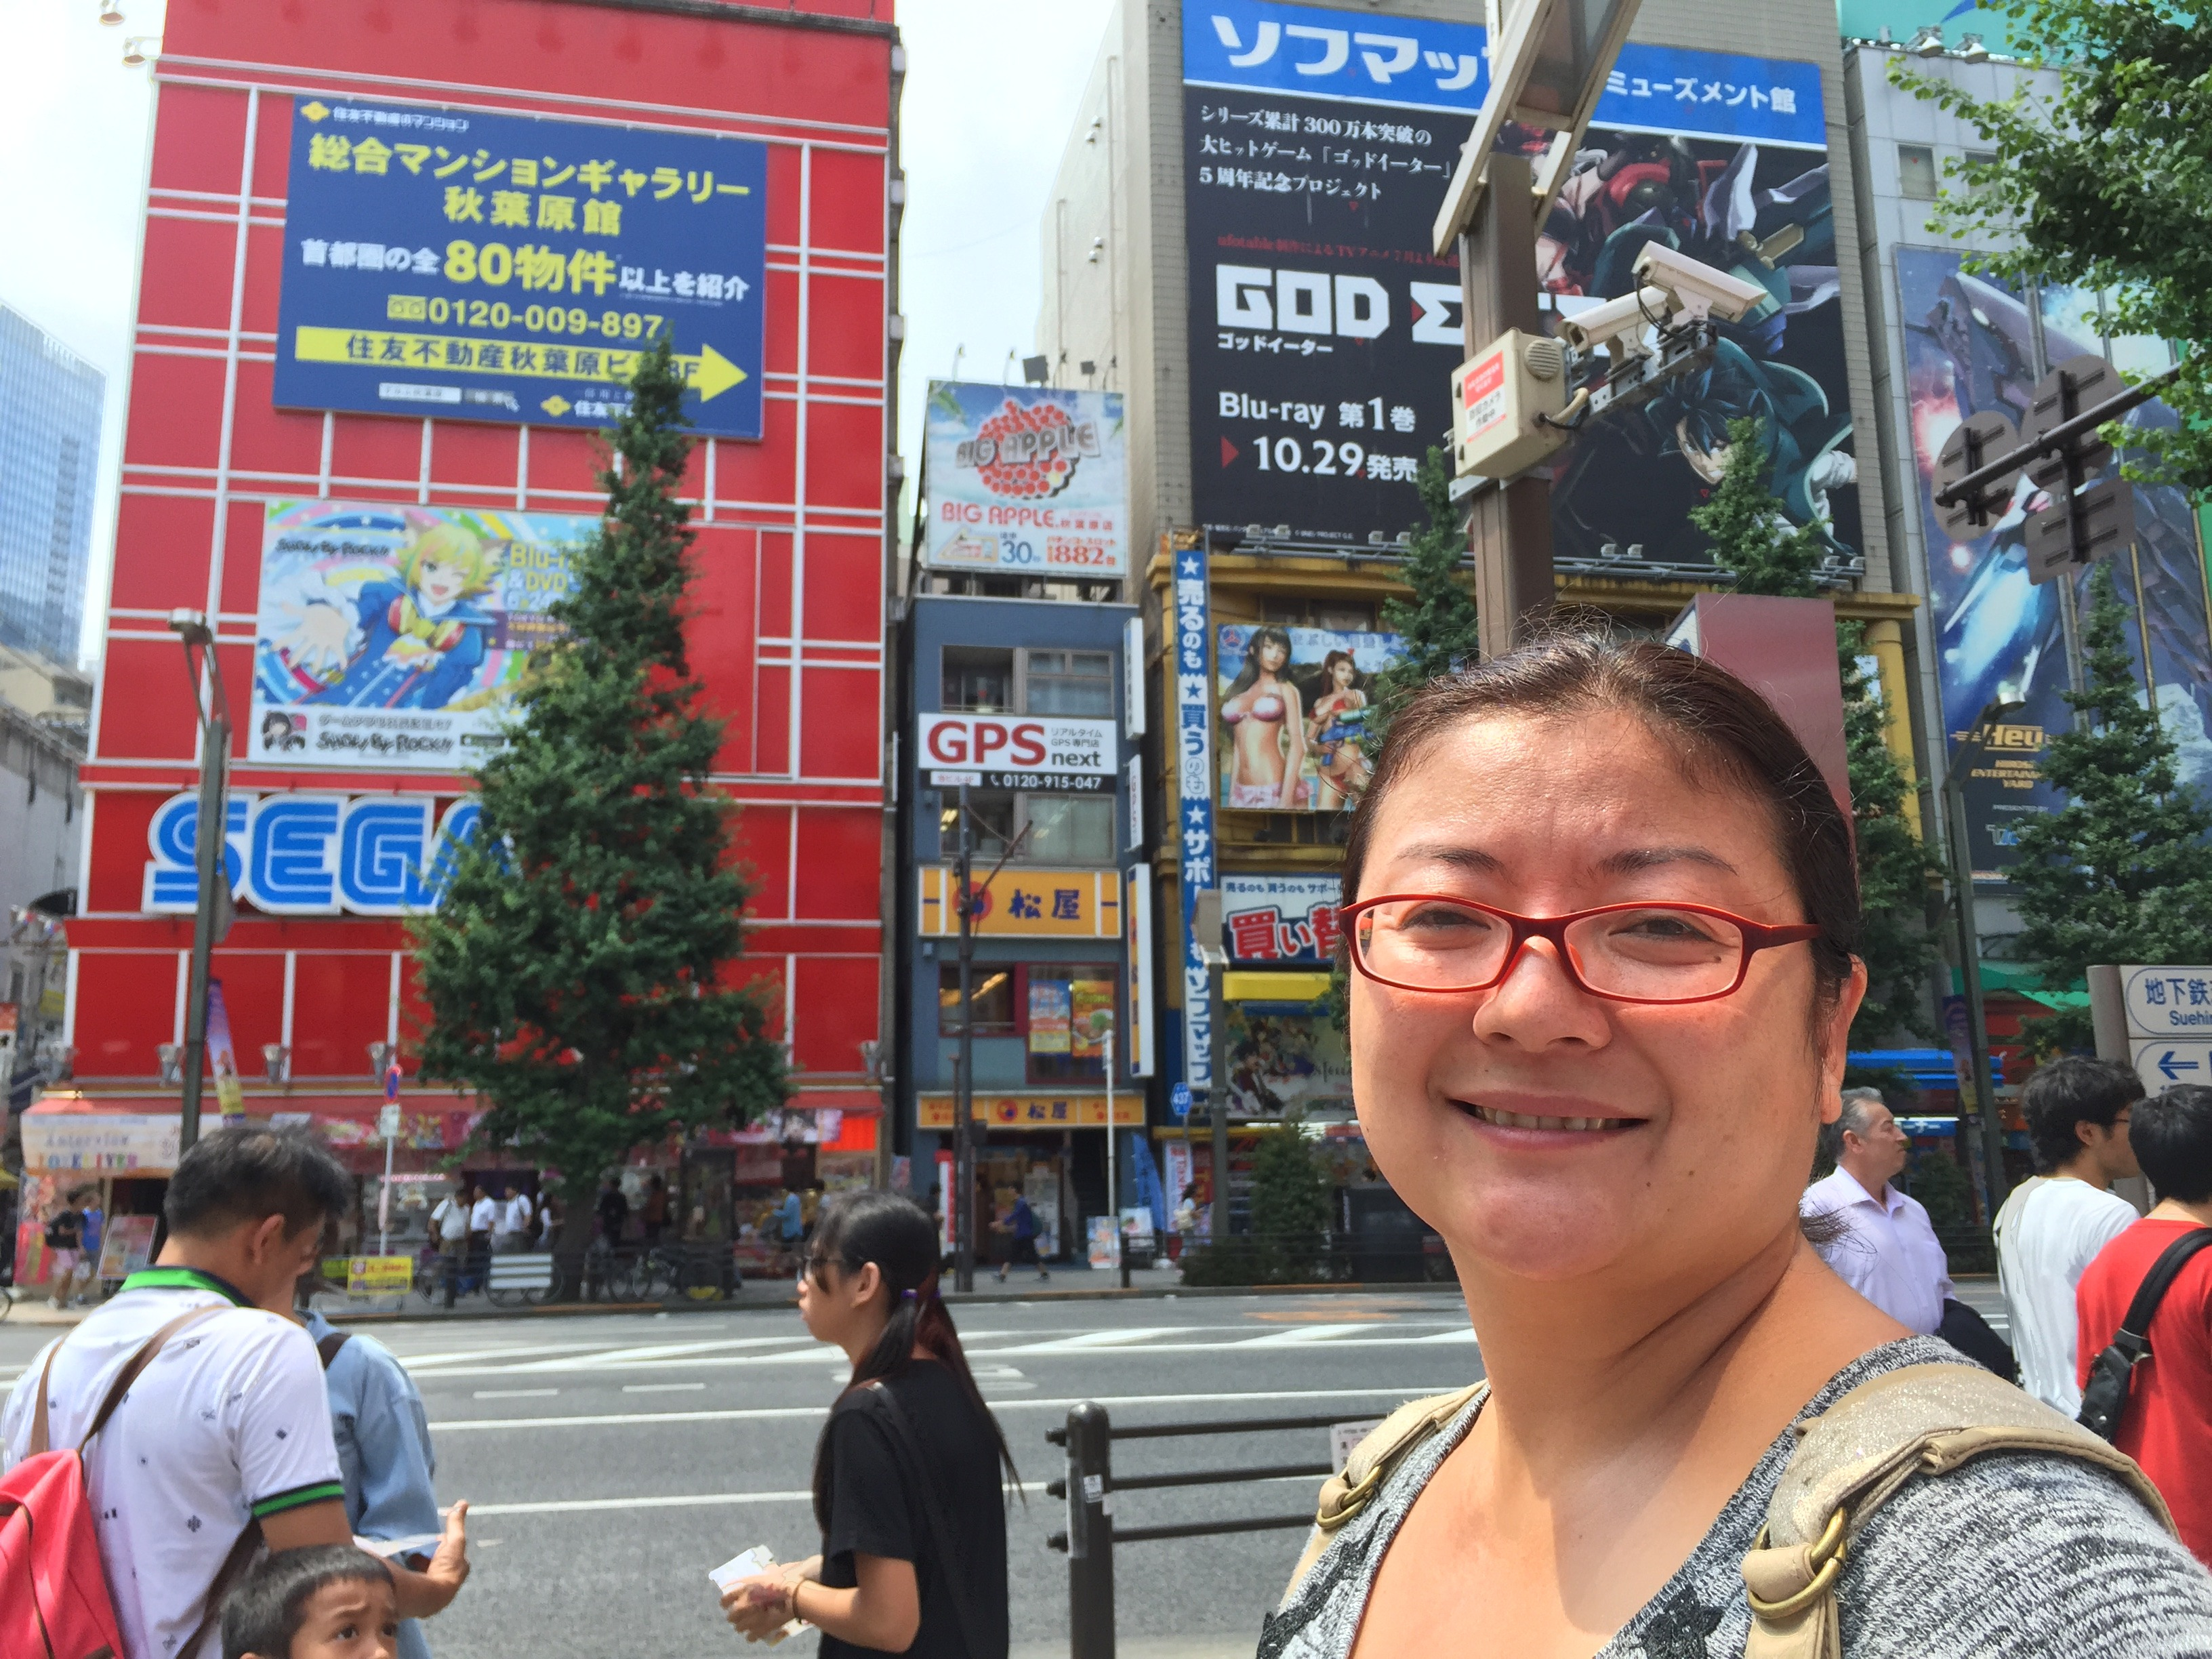 Akihabara - Japanese Technology And Lifestyle - Reason Why You Should Travel To Tokyo Japan Guide Video 2018 – 5 Reasons 🗾 🌏